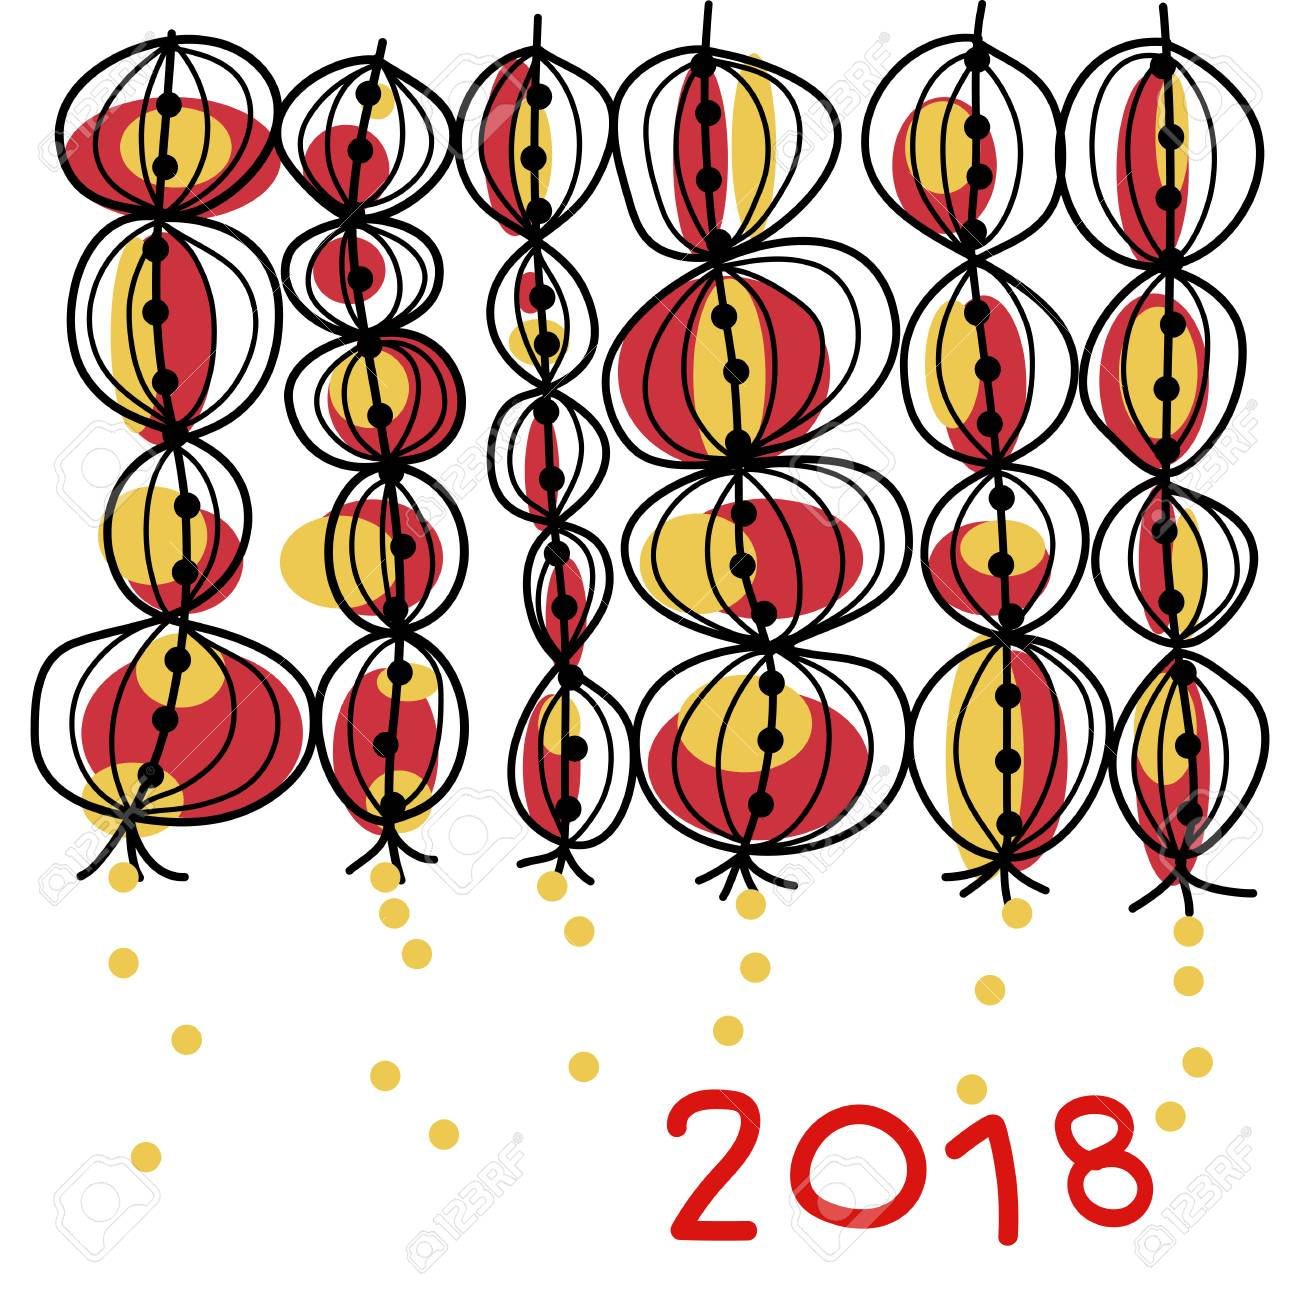 hand drawing happy chinese new year 2018 background lanterns moon year lunar year